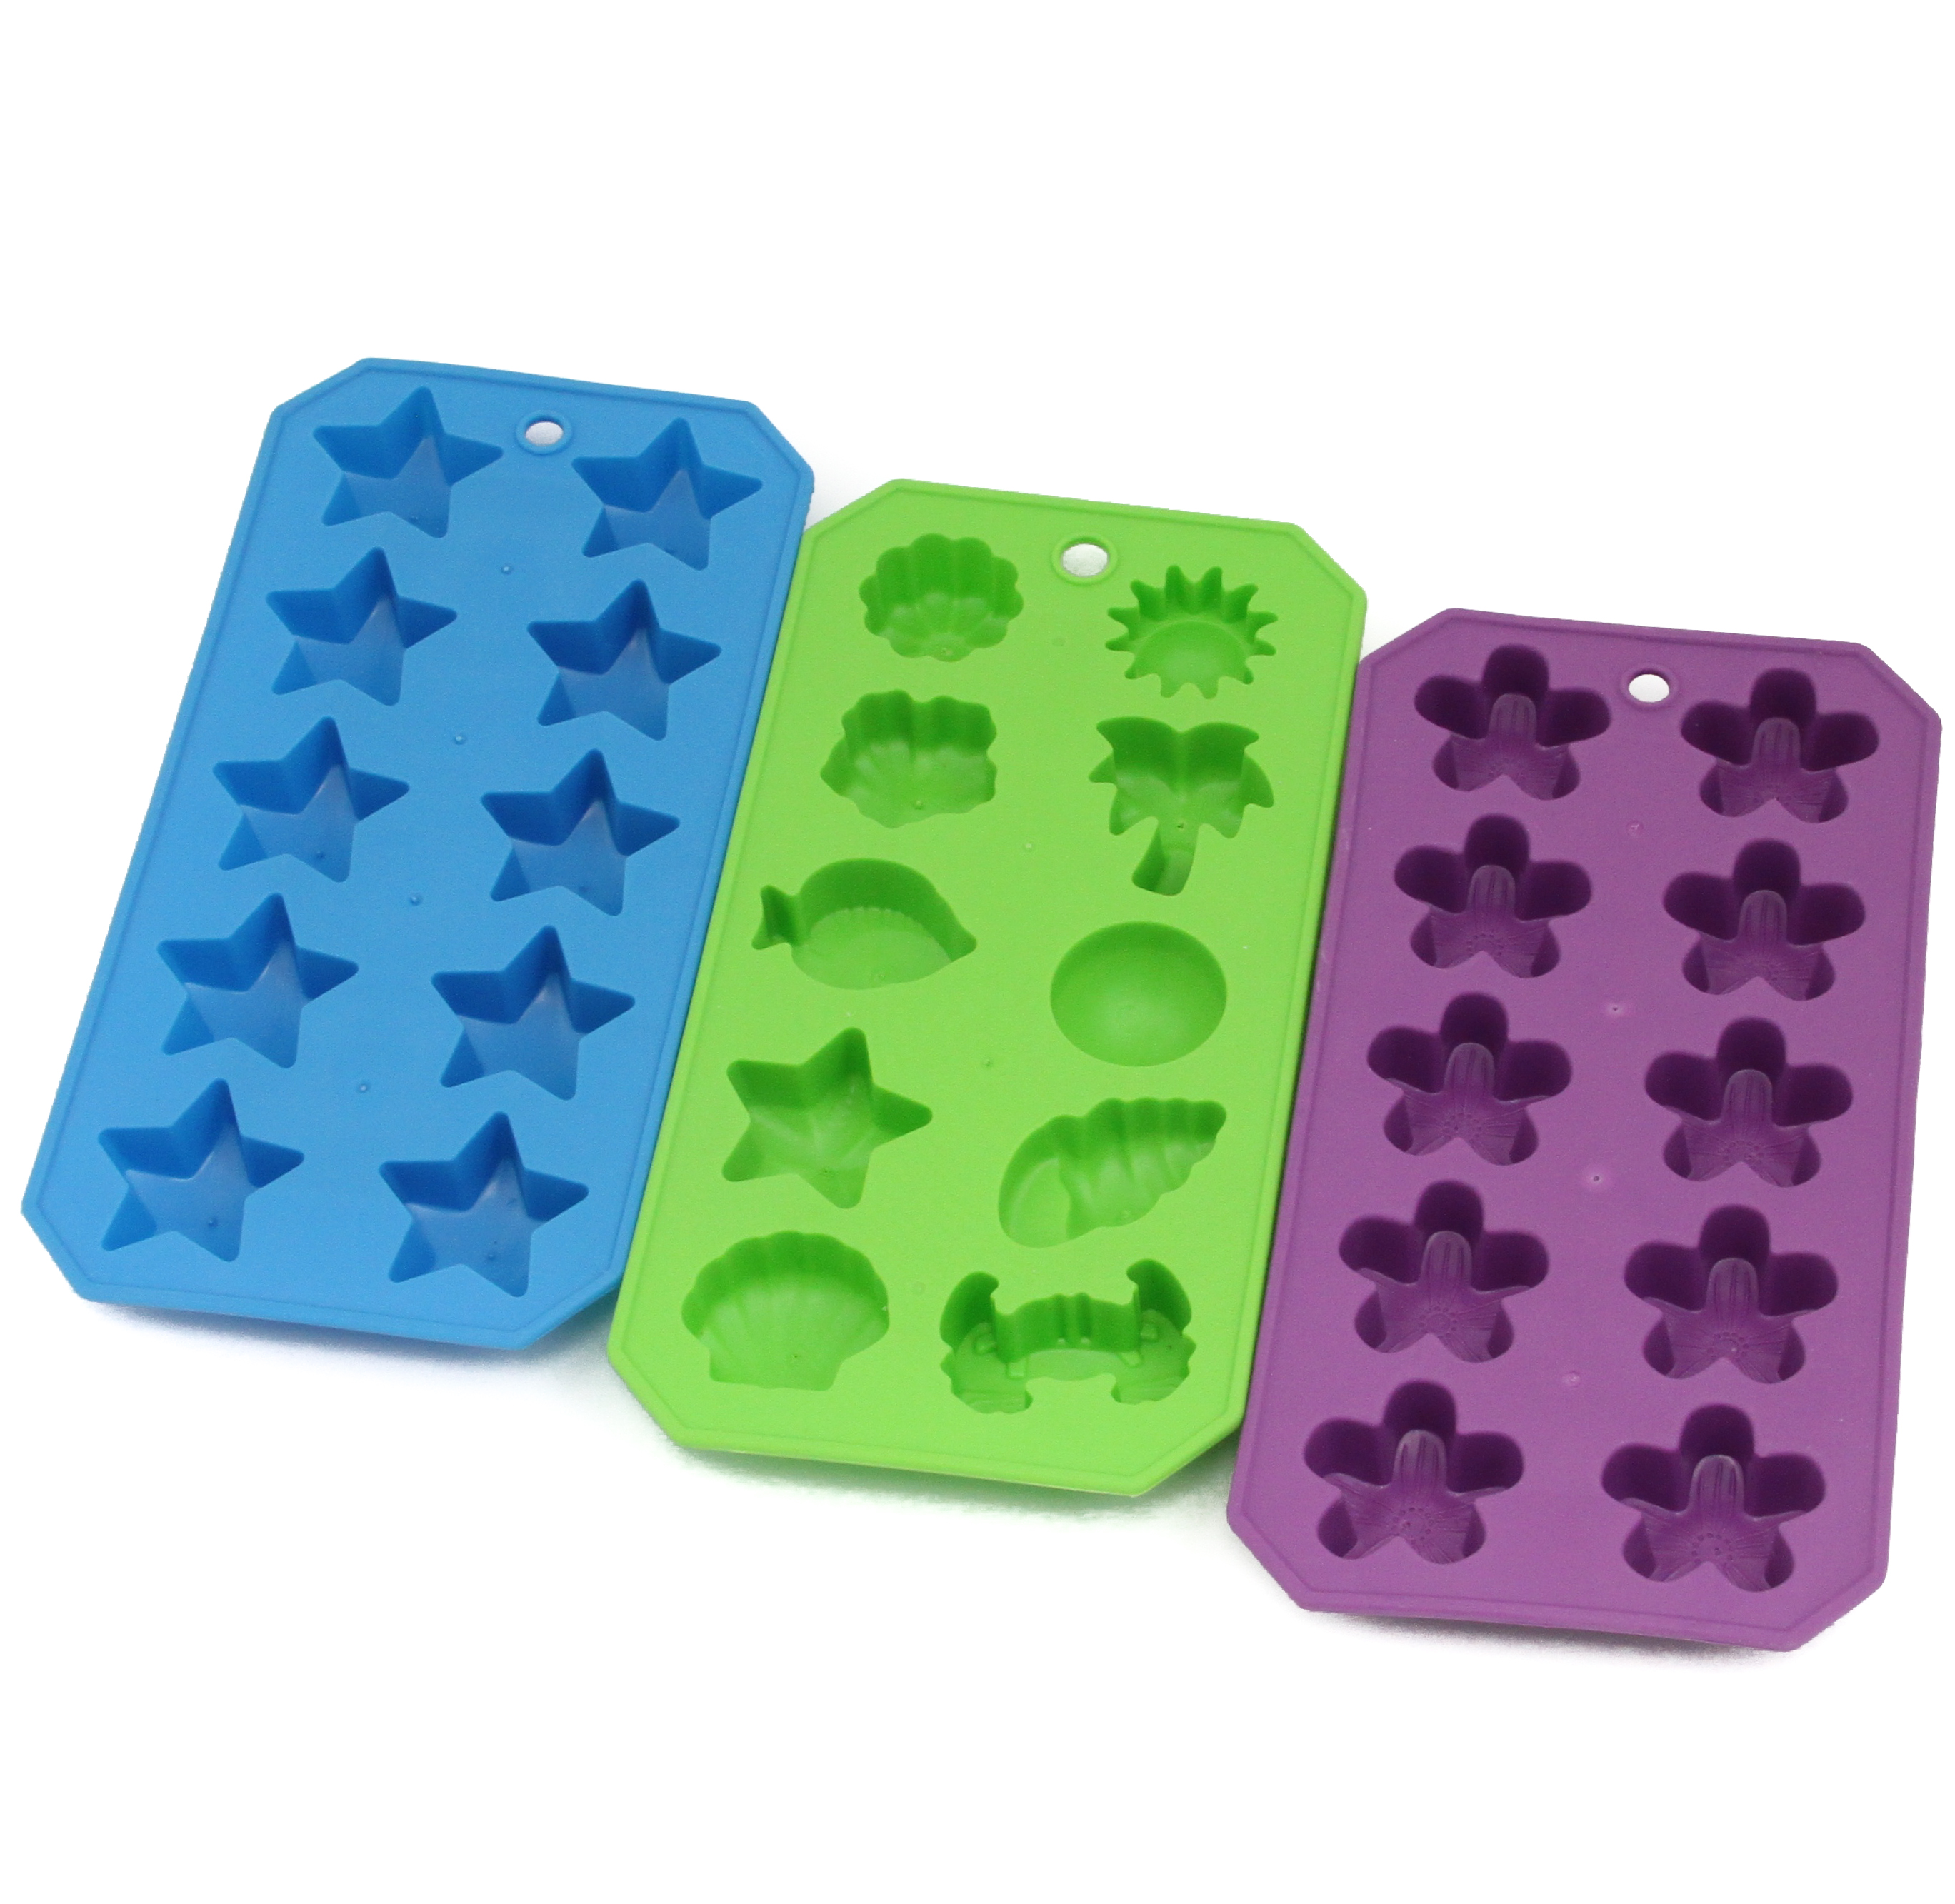 Thermoplastic Shapes Ice Cube Trays